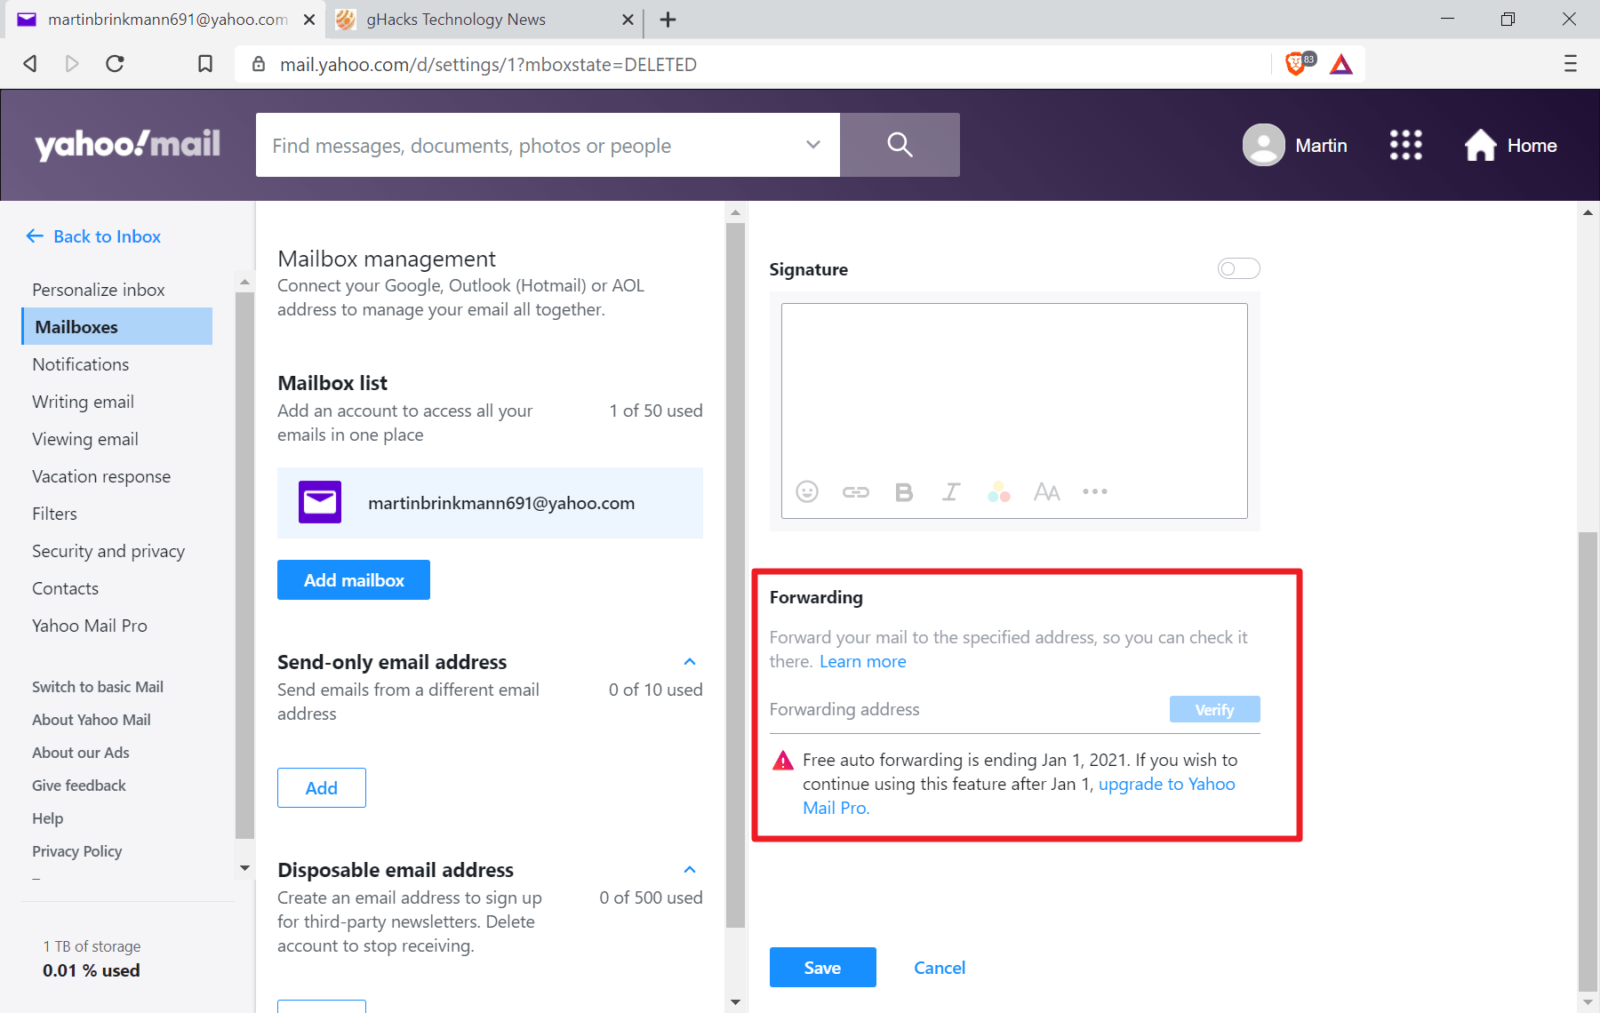 Yahoo Mail drops email forwarding option for free users